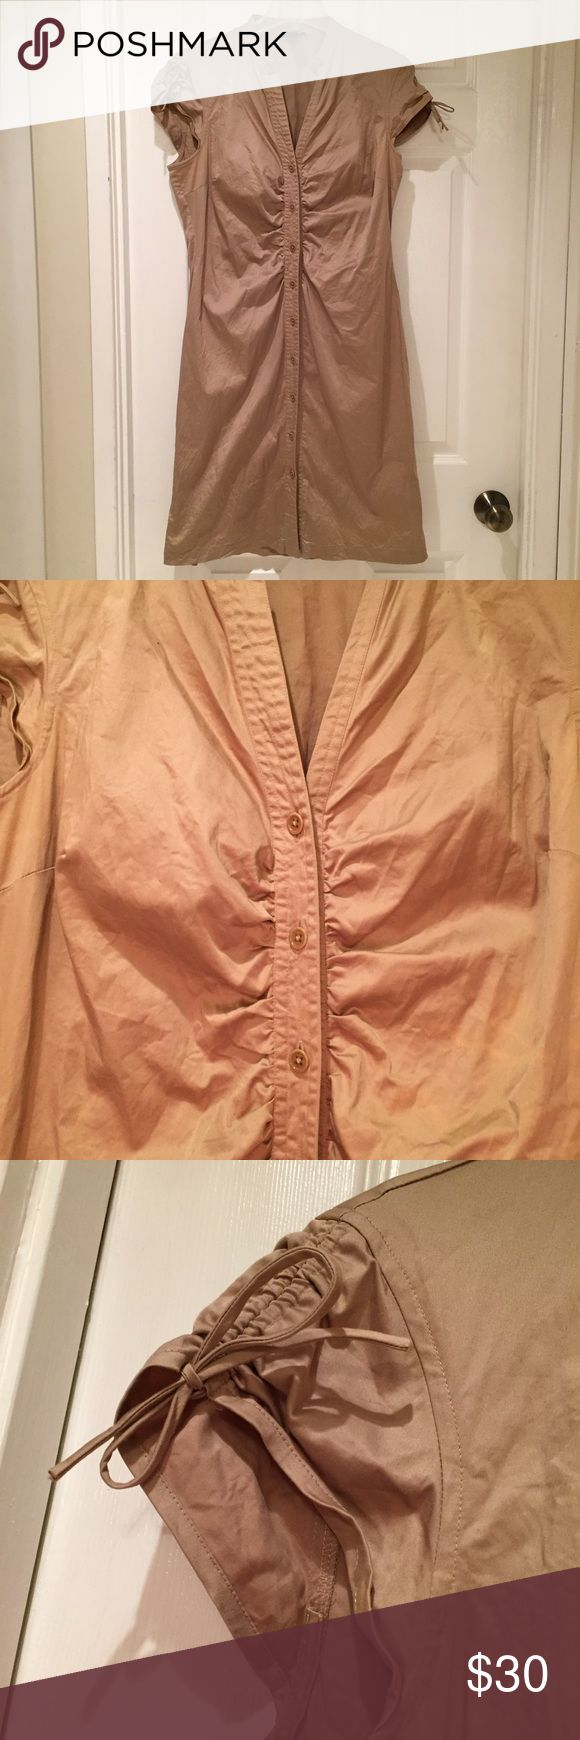 Club Monaco Button Down Khaki Shirt Dress In excellent used condition from Club Monaco. It is a khaki beige colored button down shirt style dress with the ruched short sleeves. Very light fabric wear and no holes or stains. The fabric has a little stretch to it.   Reasonable offers welcome and I do not trade. 15% discount on bundles of 2 items Club Monaco Dresses Midi